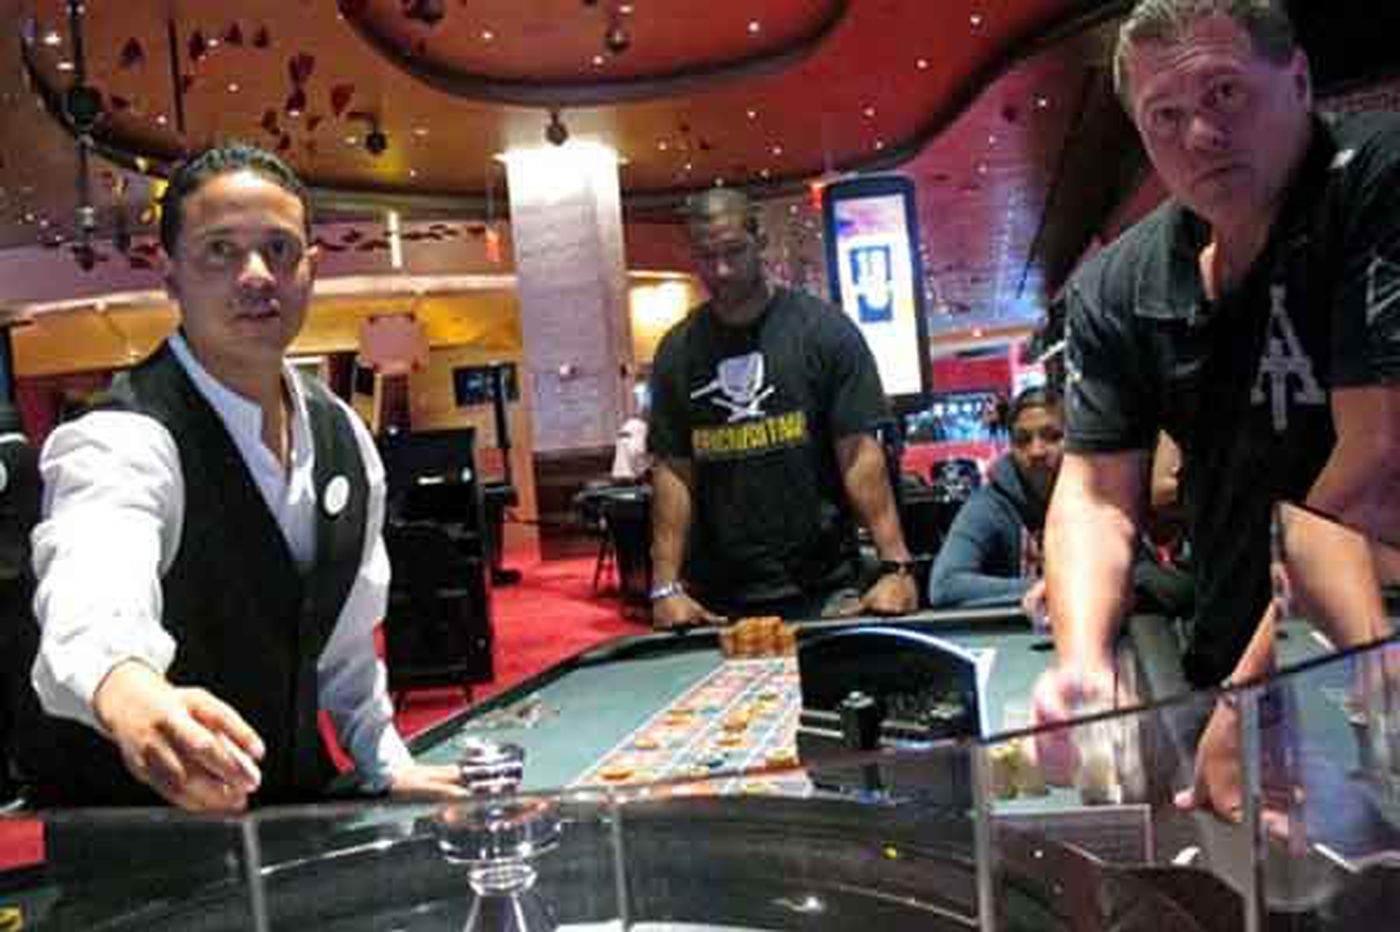 April revenue drops 12.1% at A.C. casinos